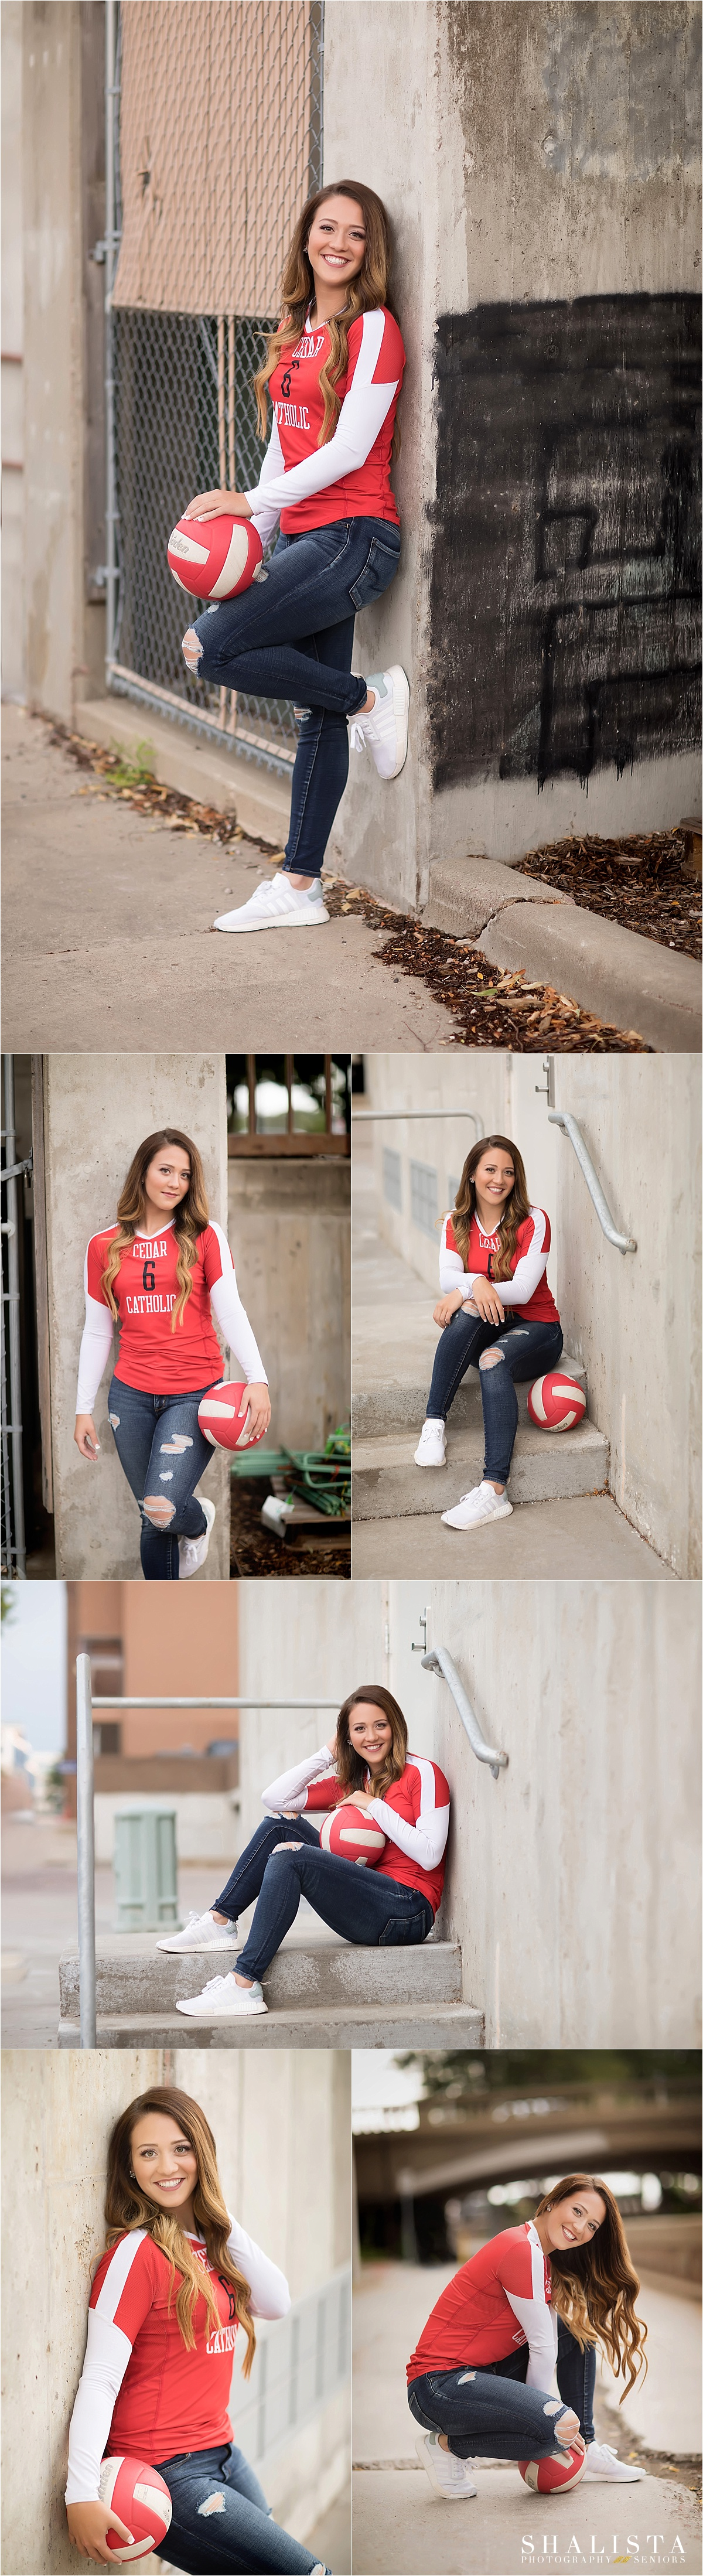 Senior Volleyball Images